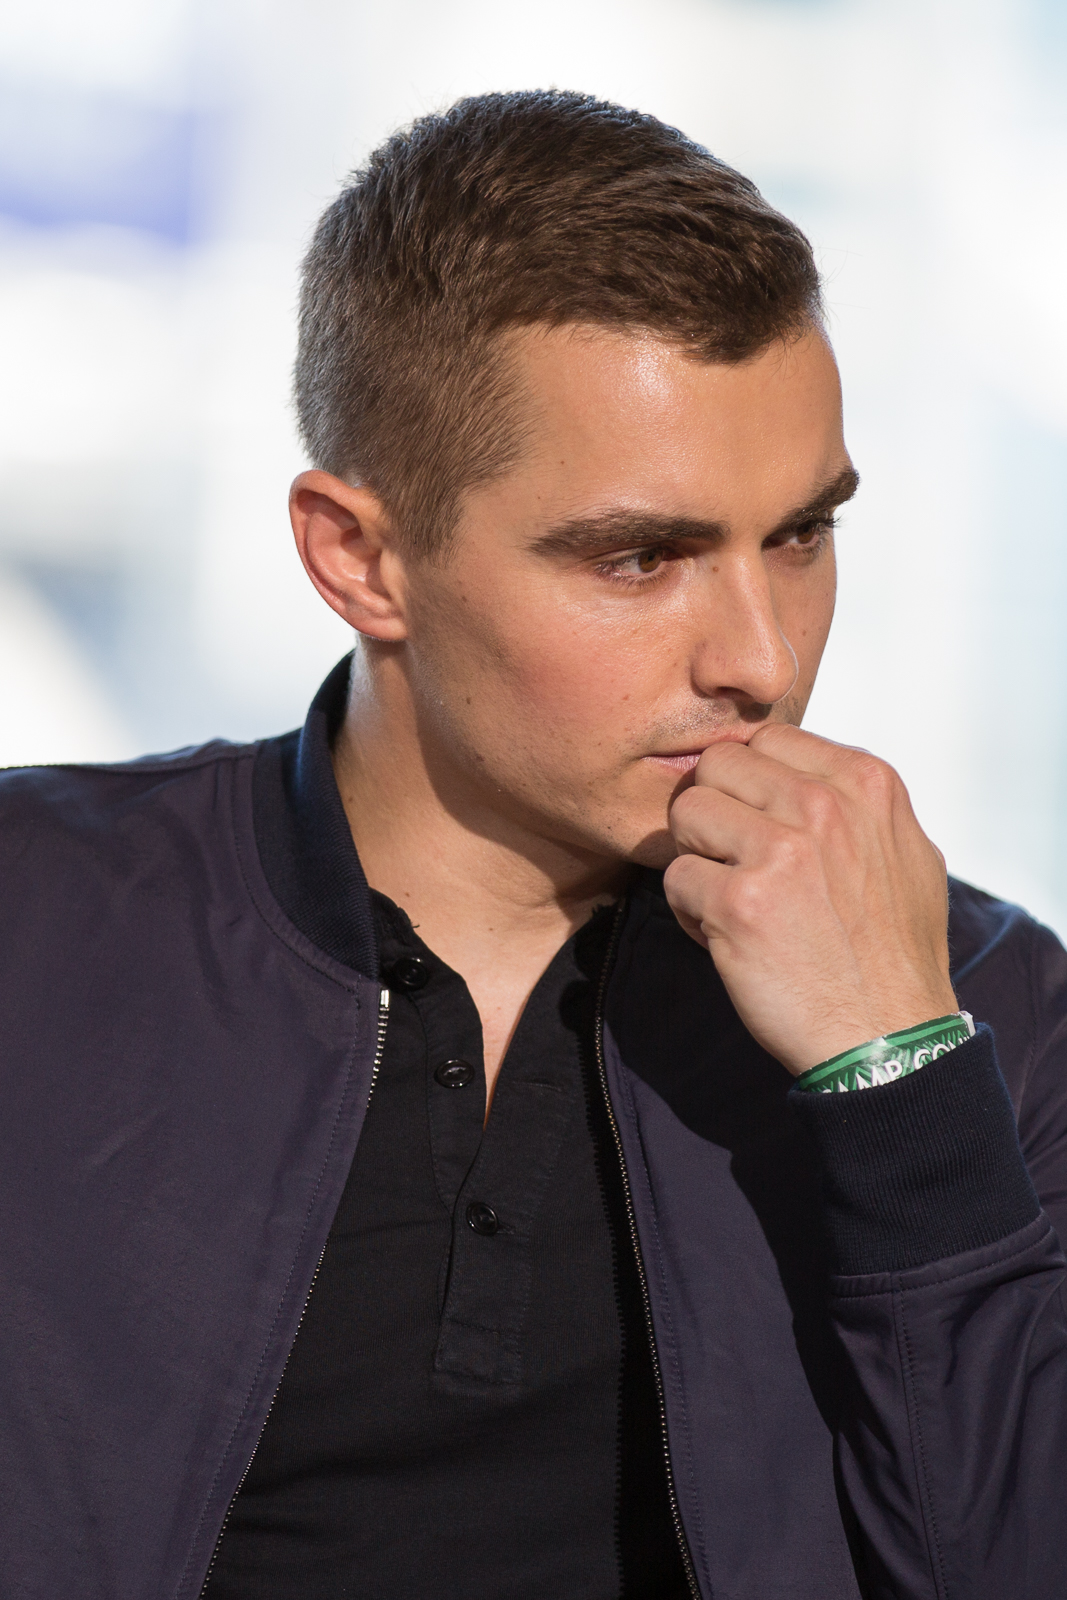 The 33-year old son of father Douglas Eugene and mother Betsy Verne Dave Franco in 2018 photo. Dave Franco earned a  million dollar salary - leaving the net worth at 2 million in 2018